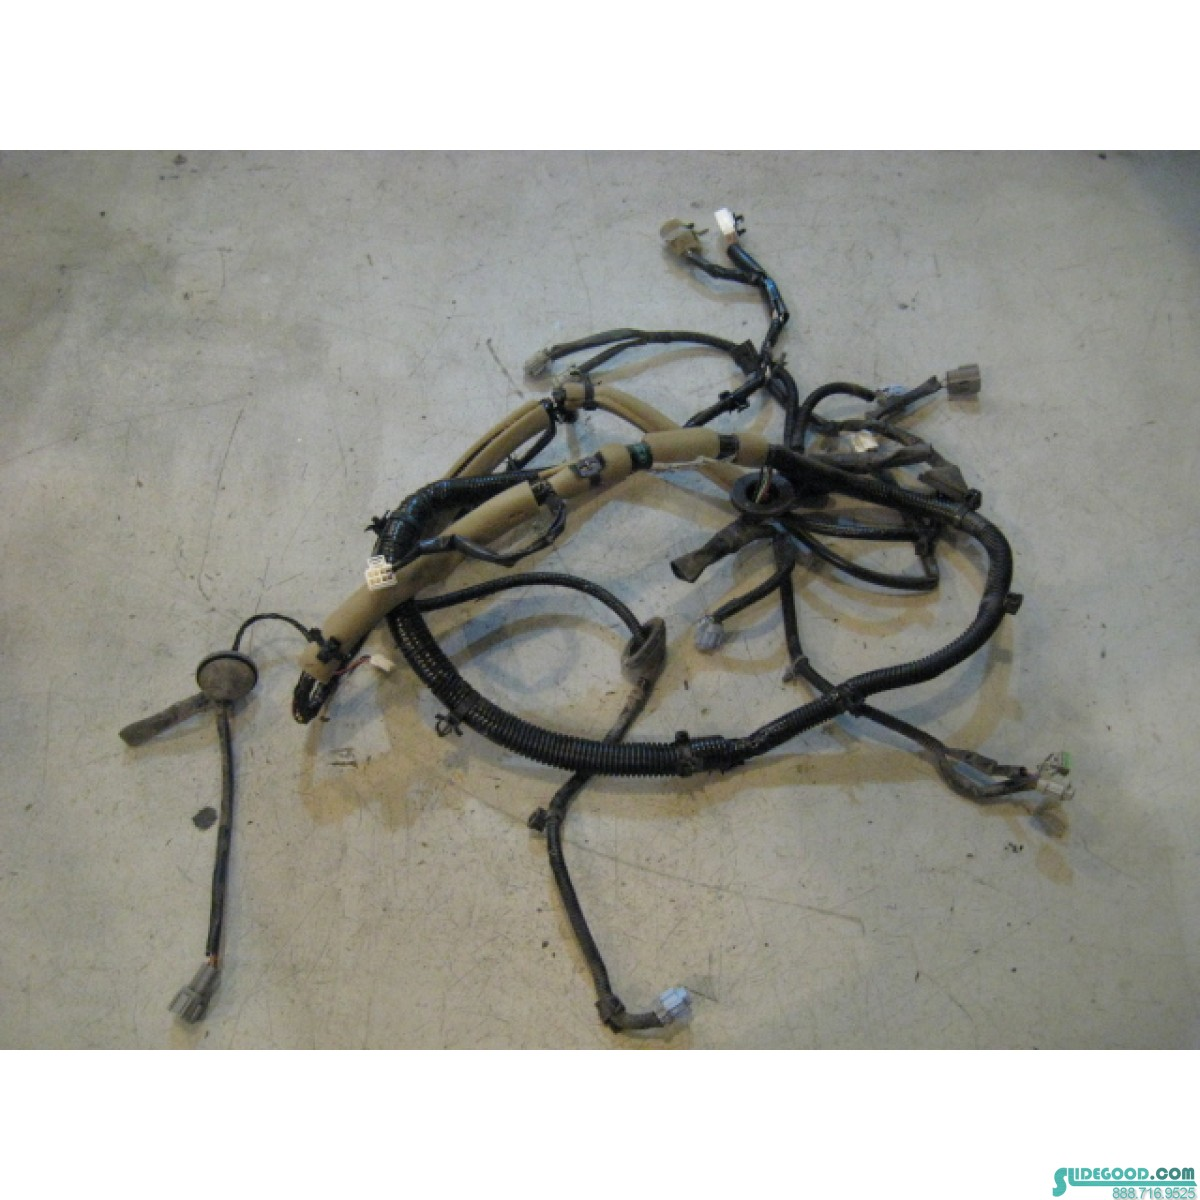 9825_01 nissan 350z tail lamp wire harness 24015 cd000 r9825 2003 nissan 350z headlight wiring harness at virtualis.co